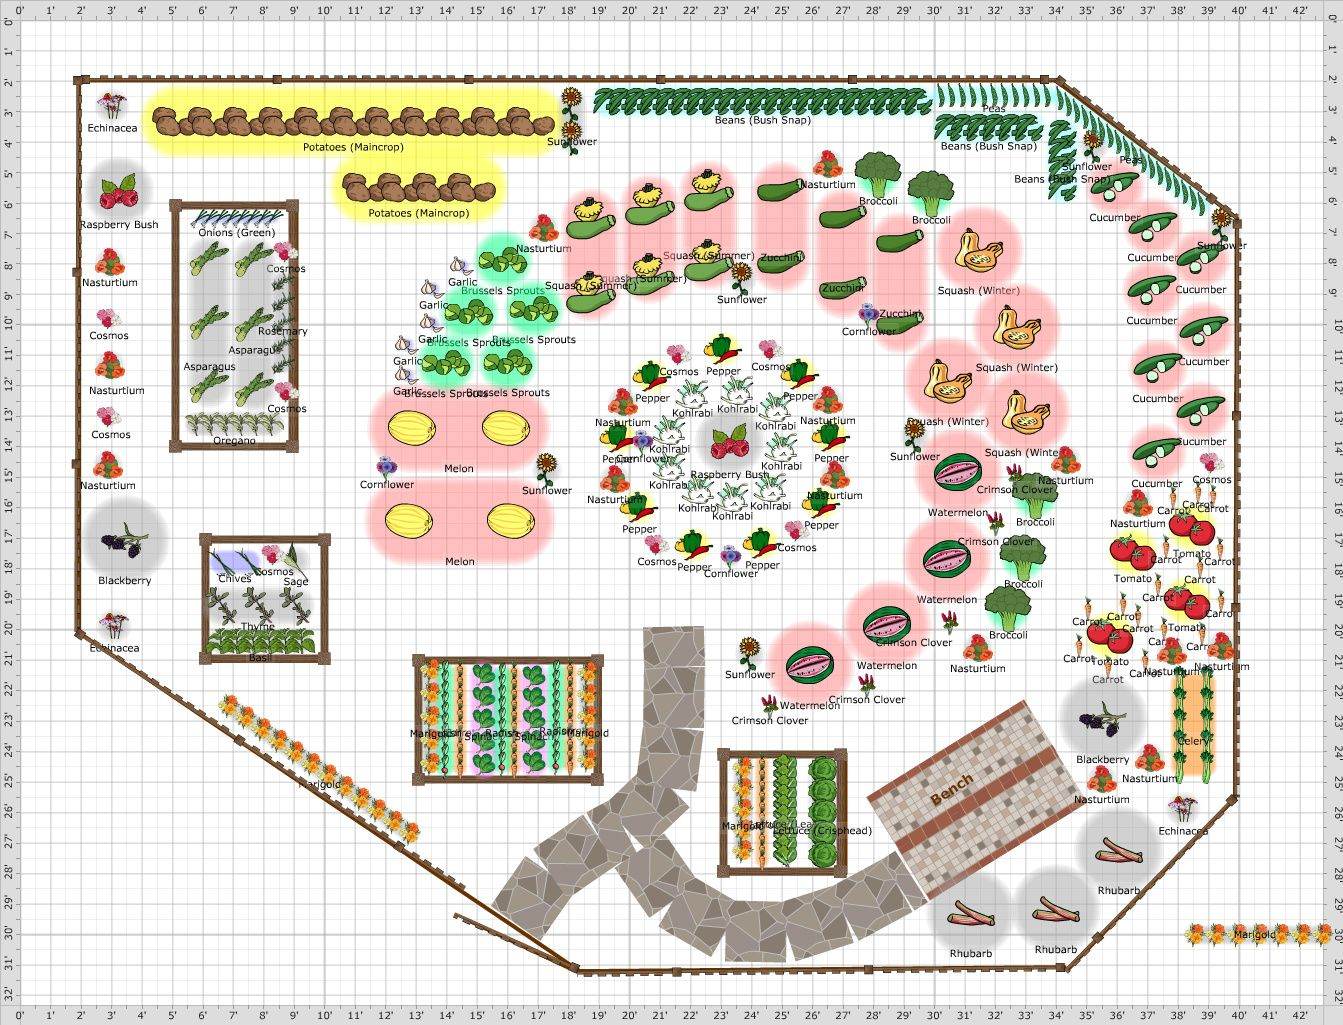 Planning A Vegetable Garden Layout Plans And Spacing With Raised Bed Foot Steep Bench Area For Evening Dinner In The Summer Ideas Backyard